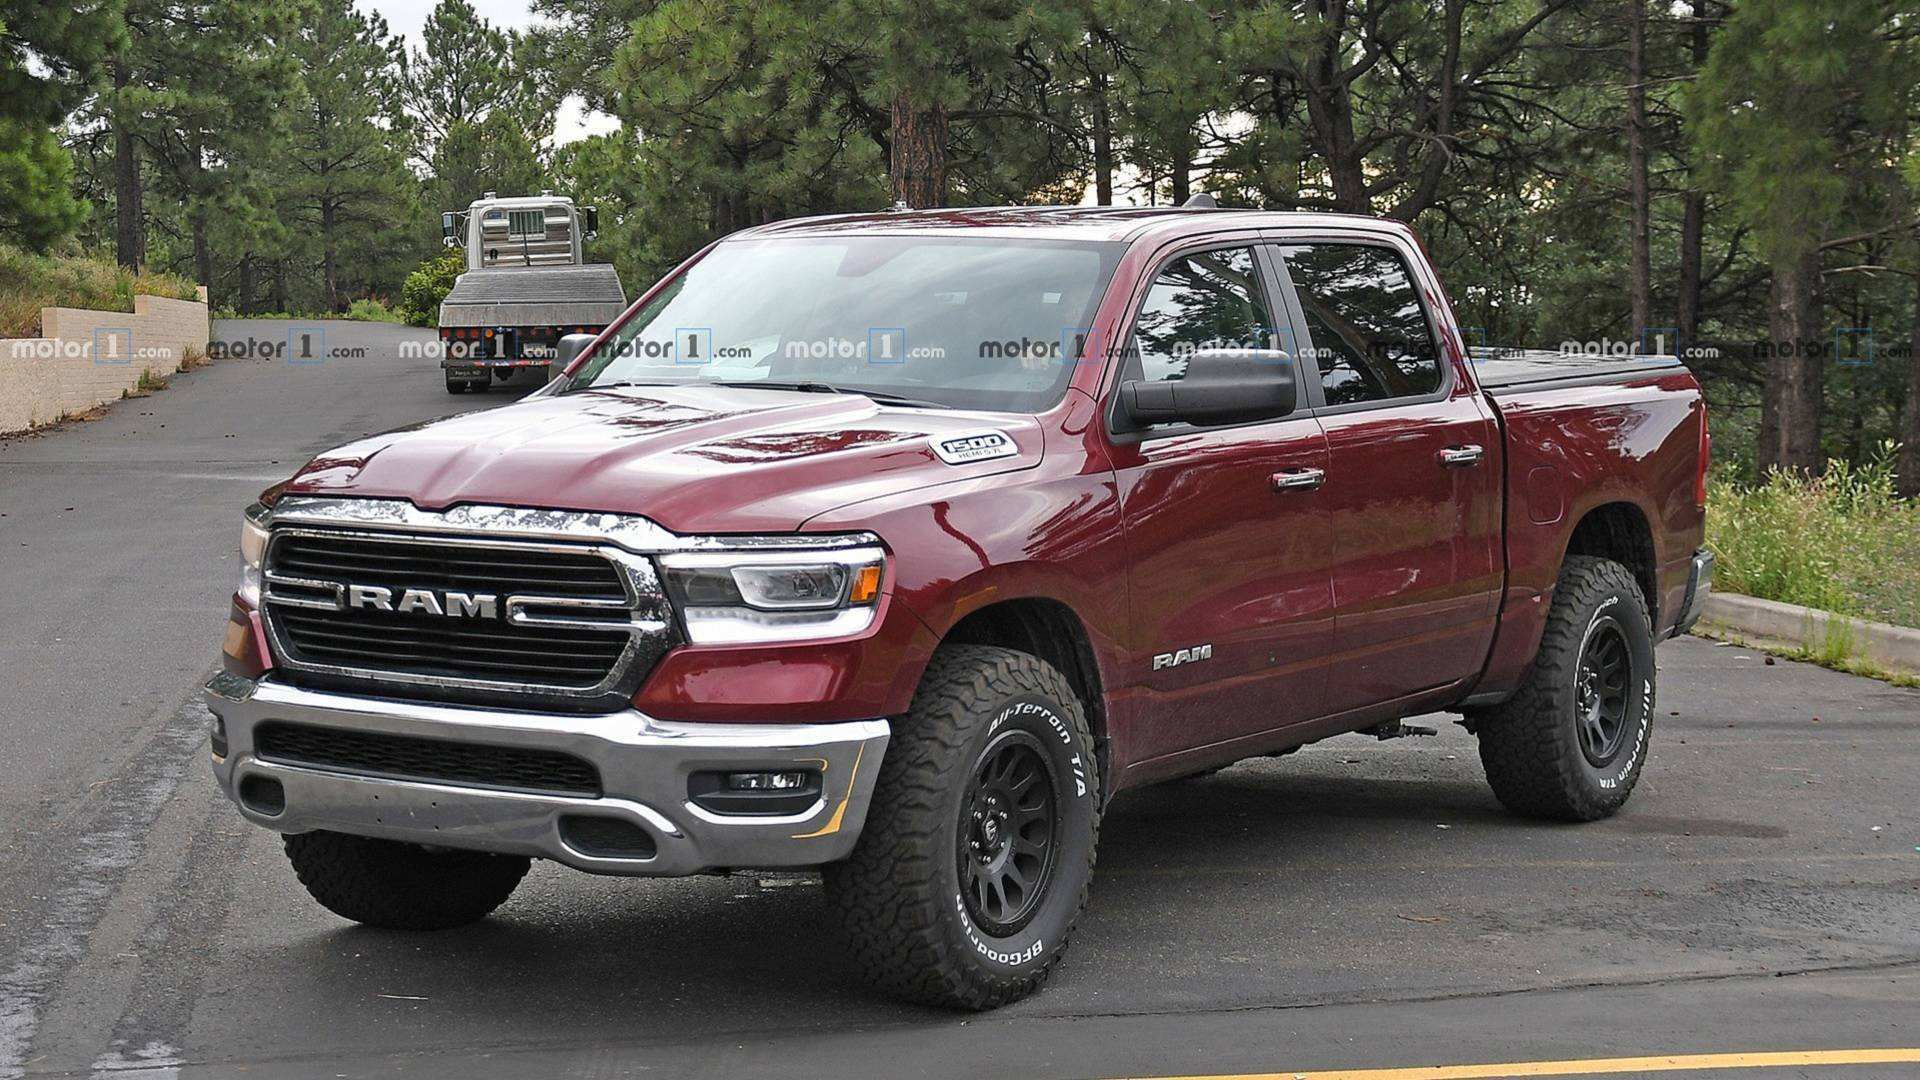 70 The Best 2020 Dodge Ram Rebel Trx Review And Release Date